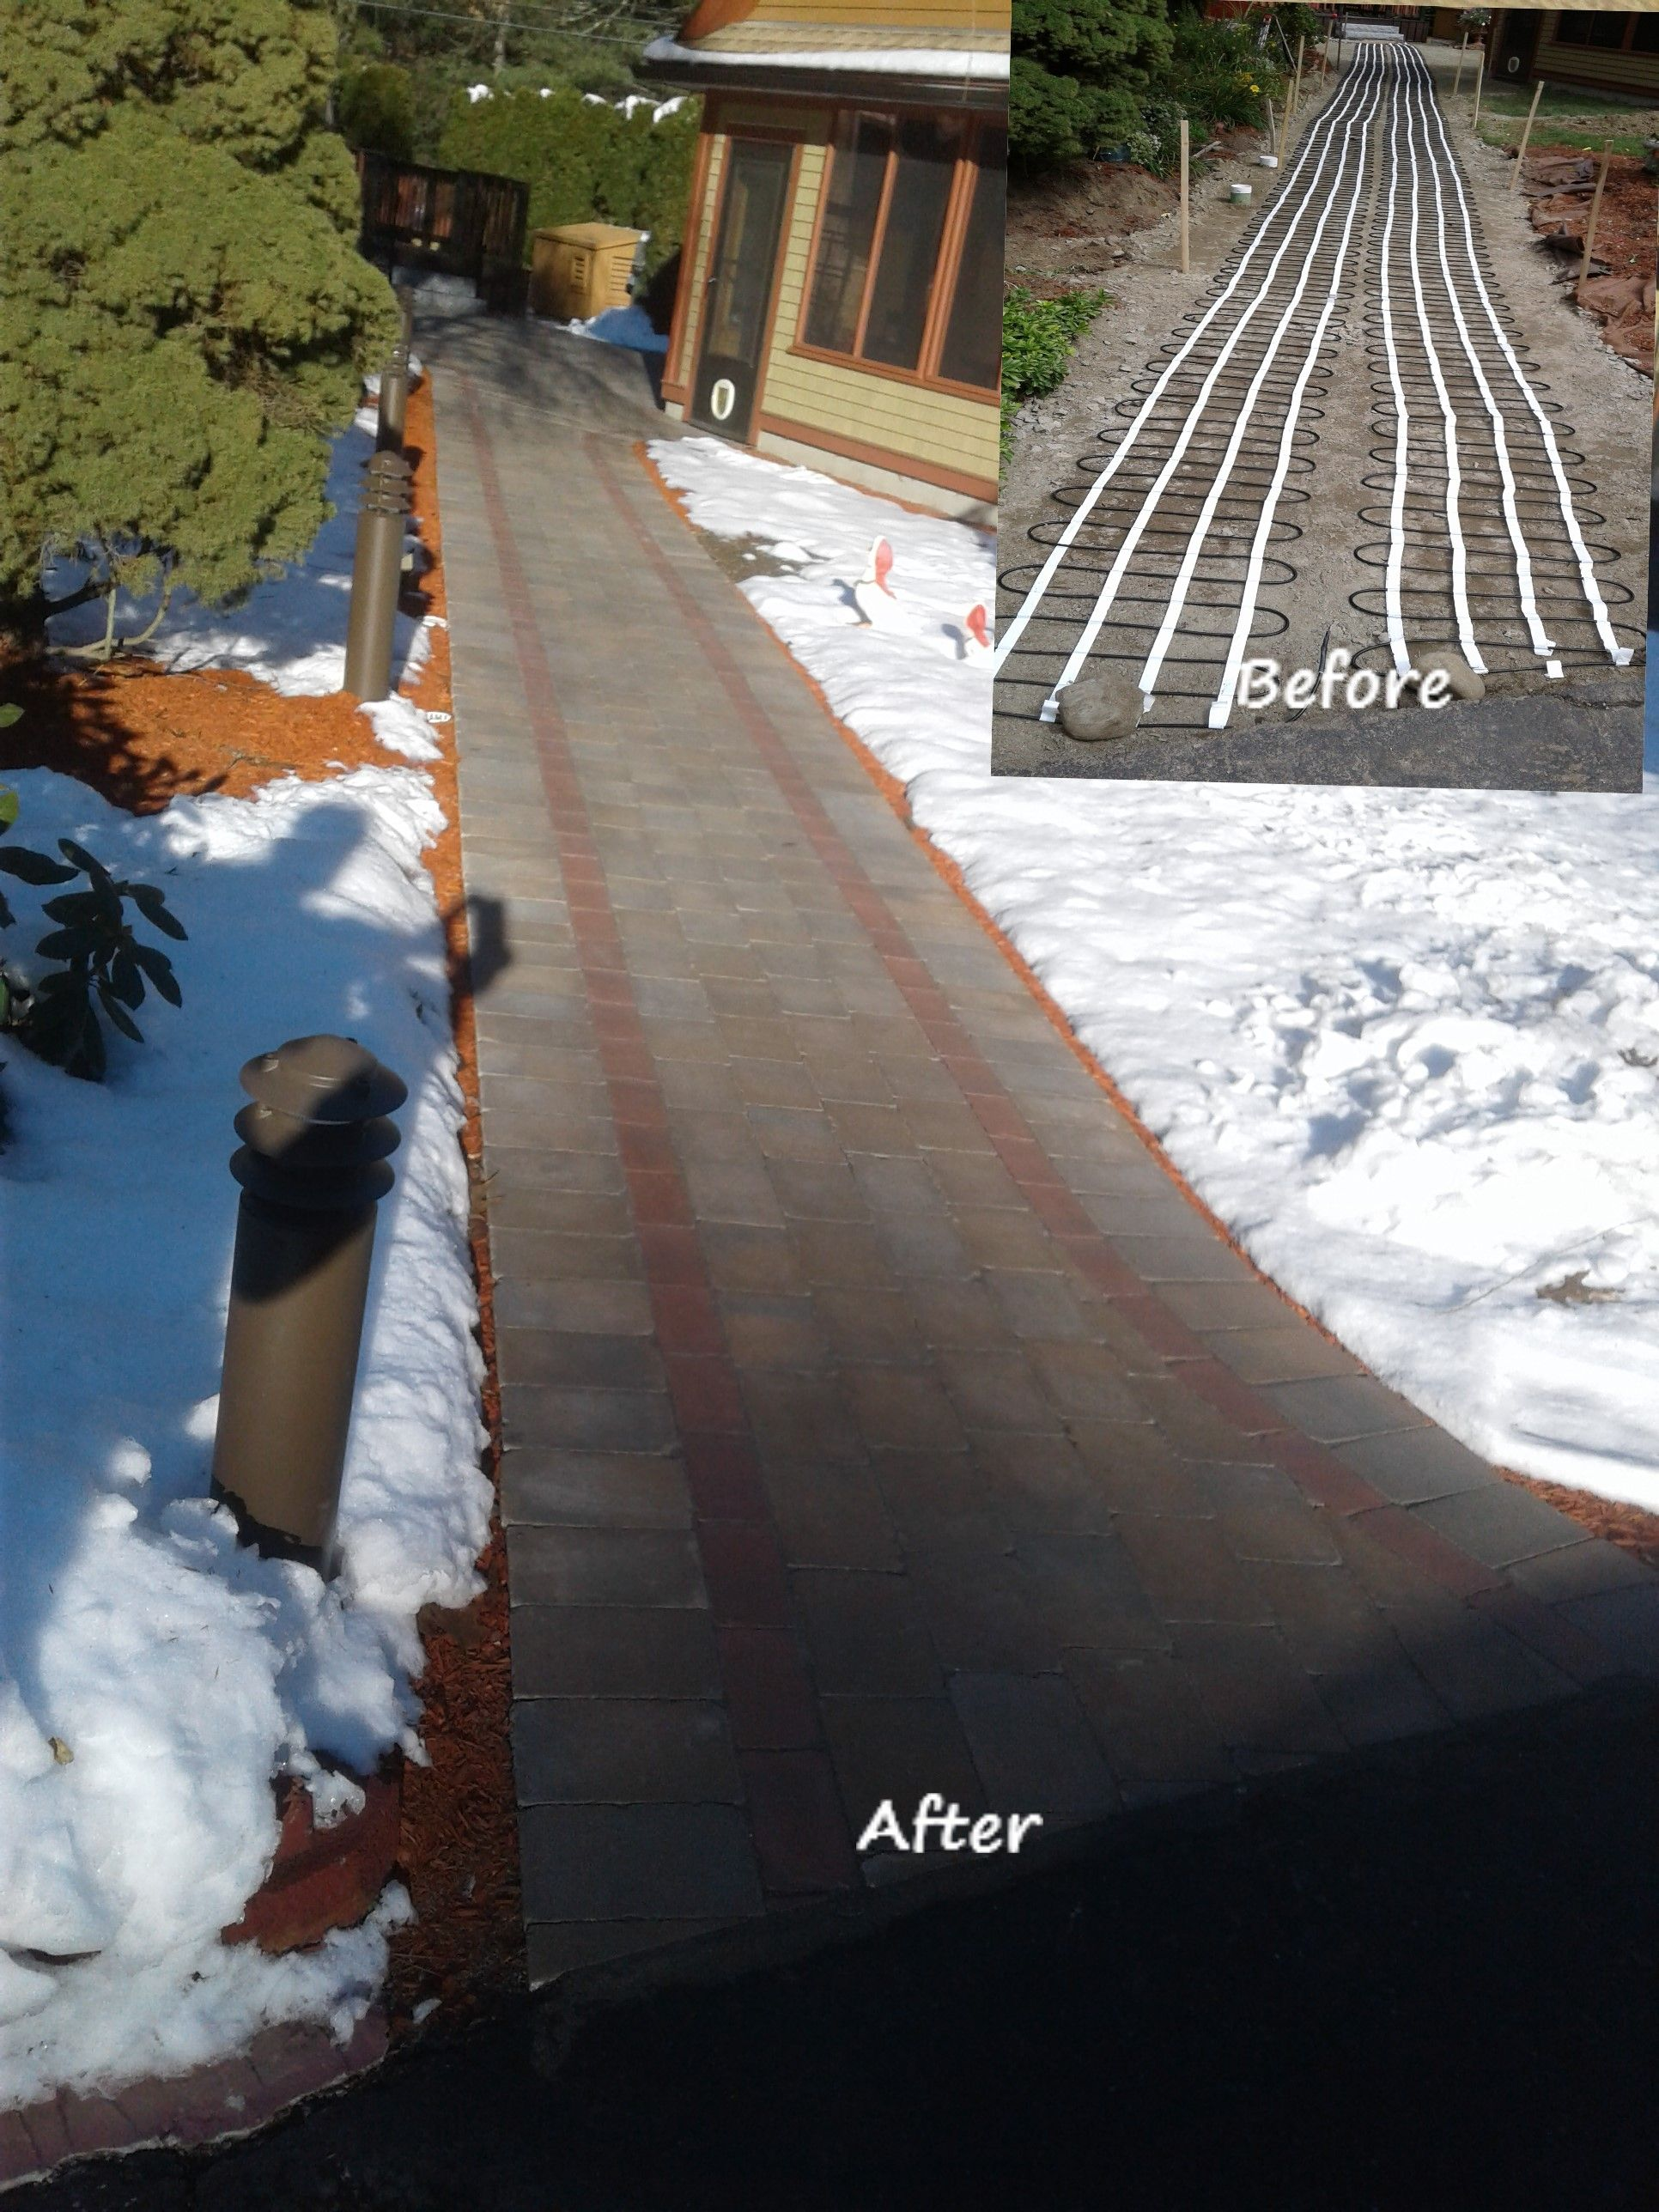 Heating element was installed under this paver walkway